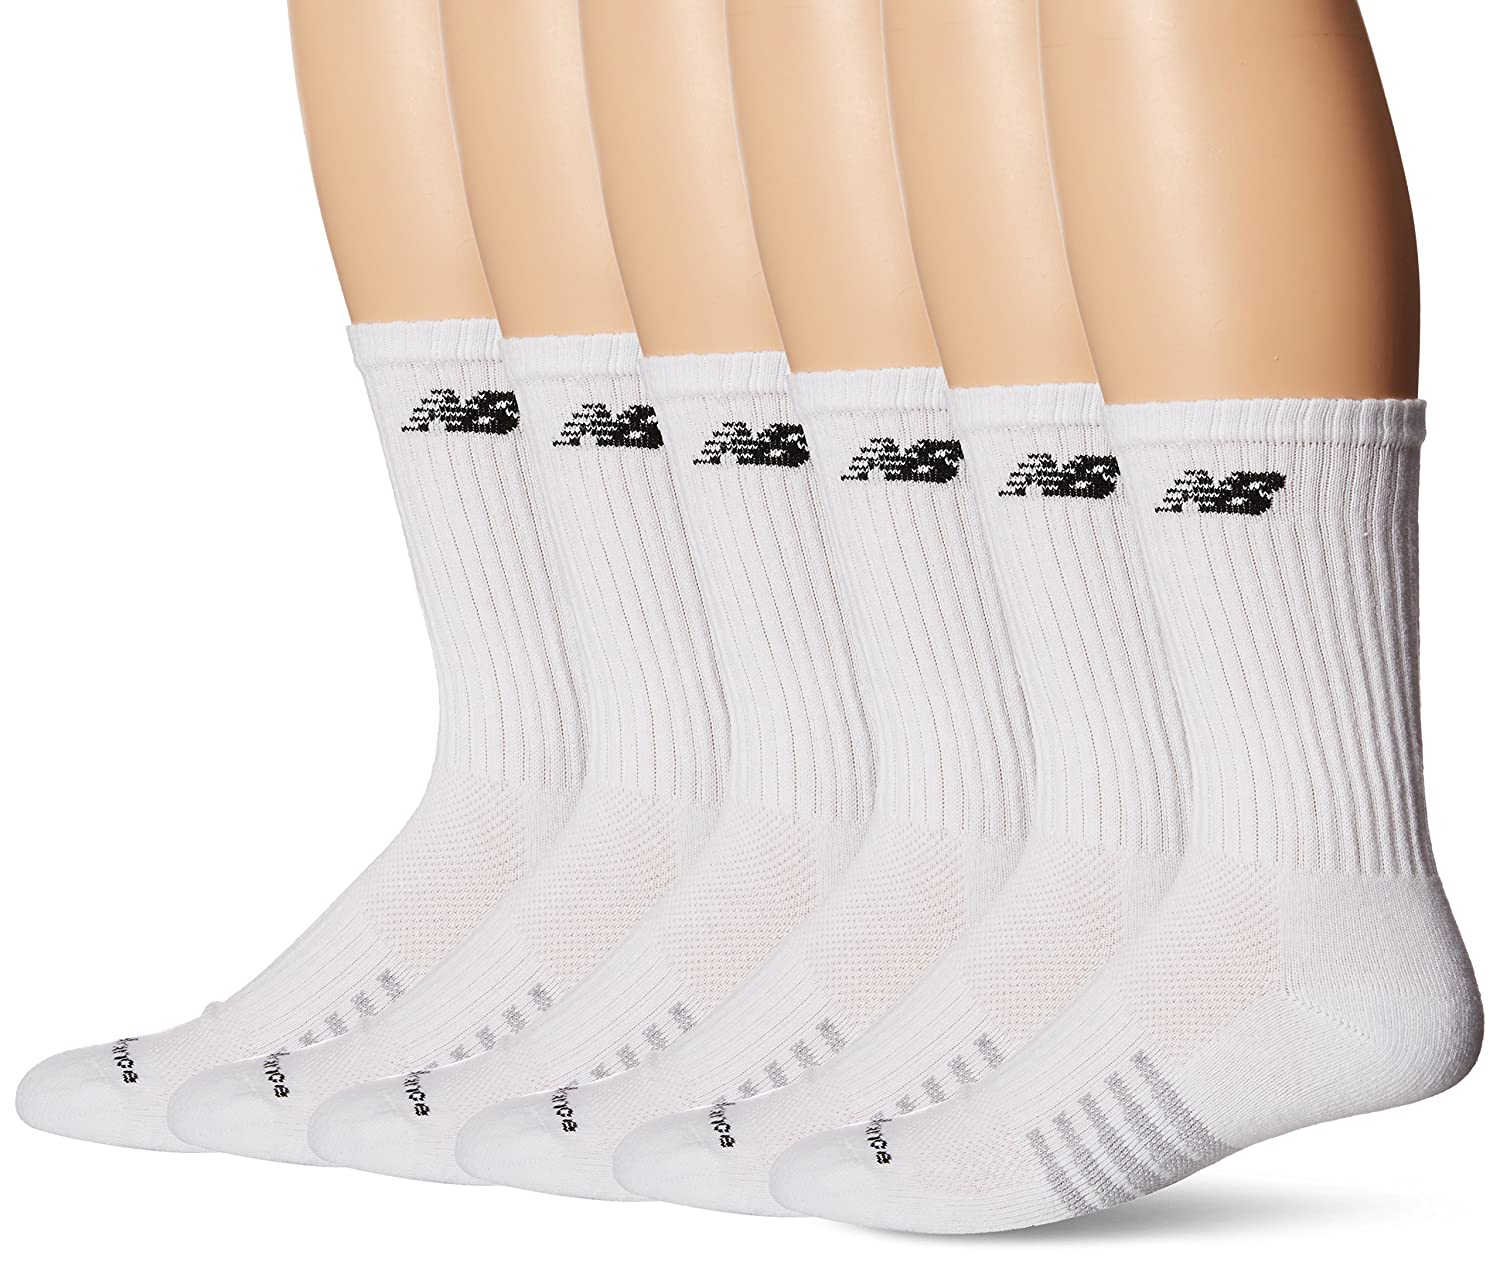 New Balance Men's Core Cotton 6 Pack Crew Socks N6010-776-3-WEB